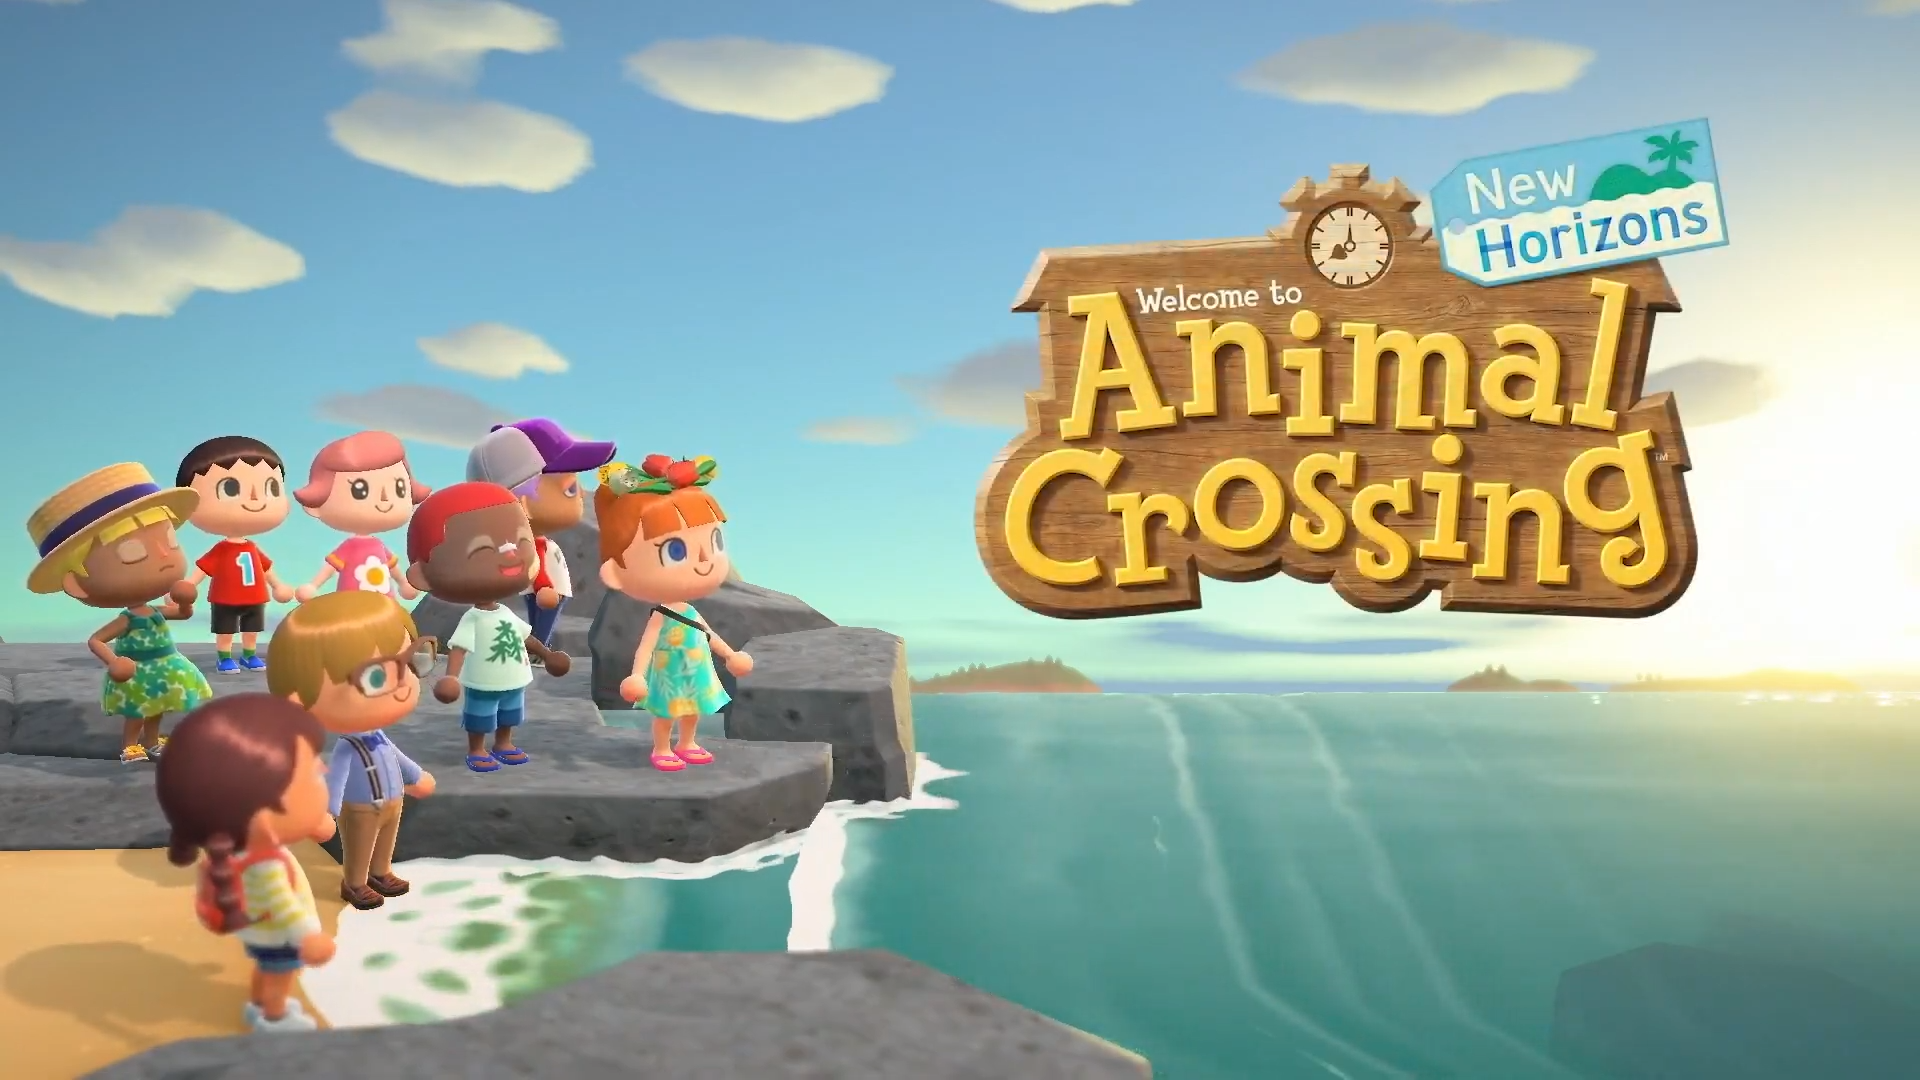 Animal Crossing New Horizons And Japanese Colonialism By Kazuma Hashimoto Noteworthy The Journal Blog